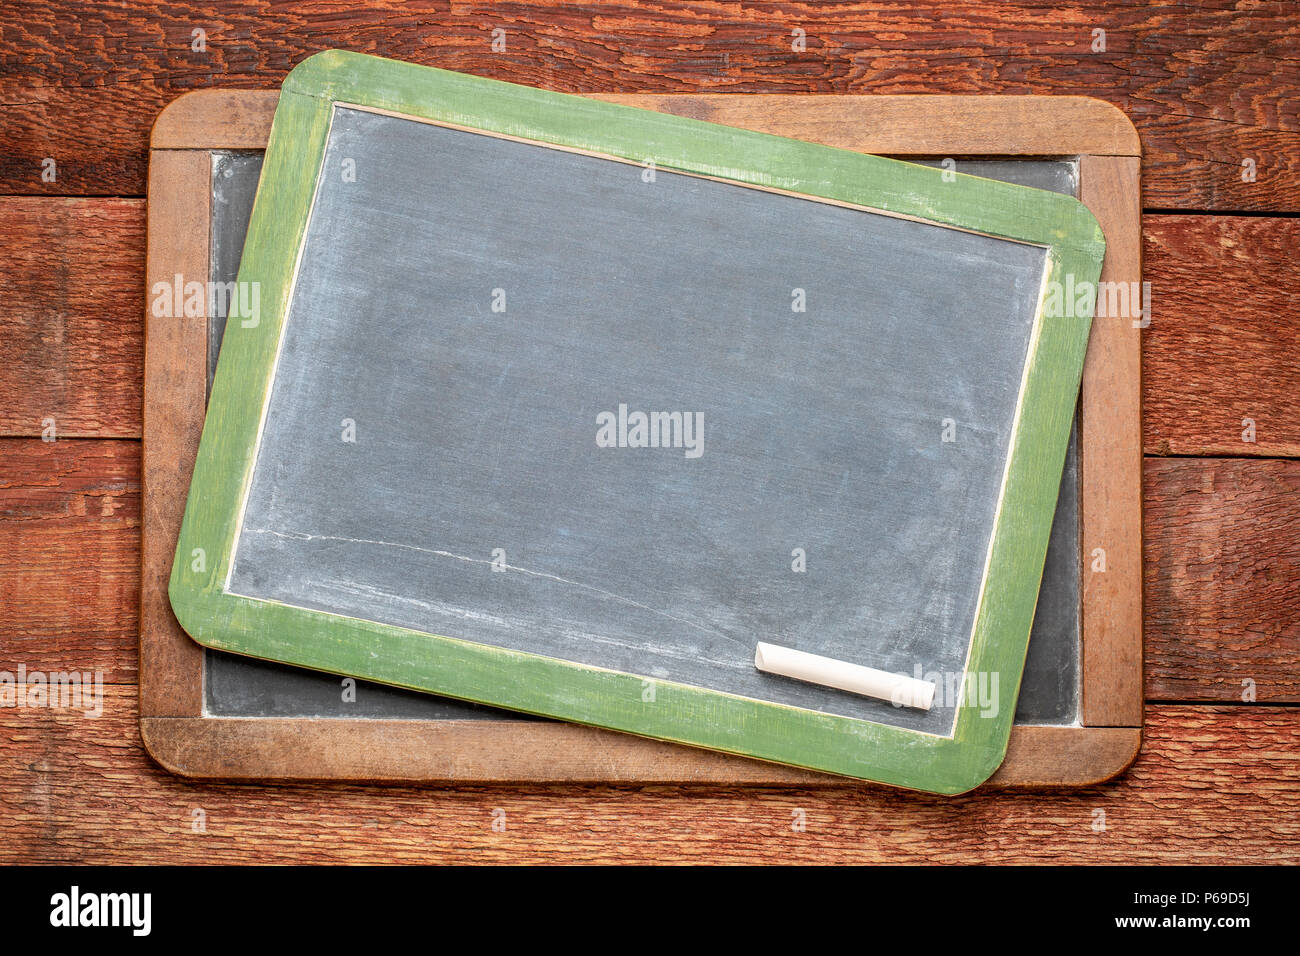 blank slate blackboards with a chalk against rustic barn wood - Stock Image